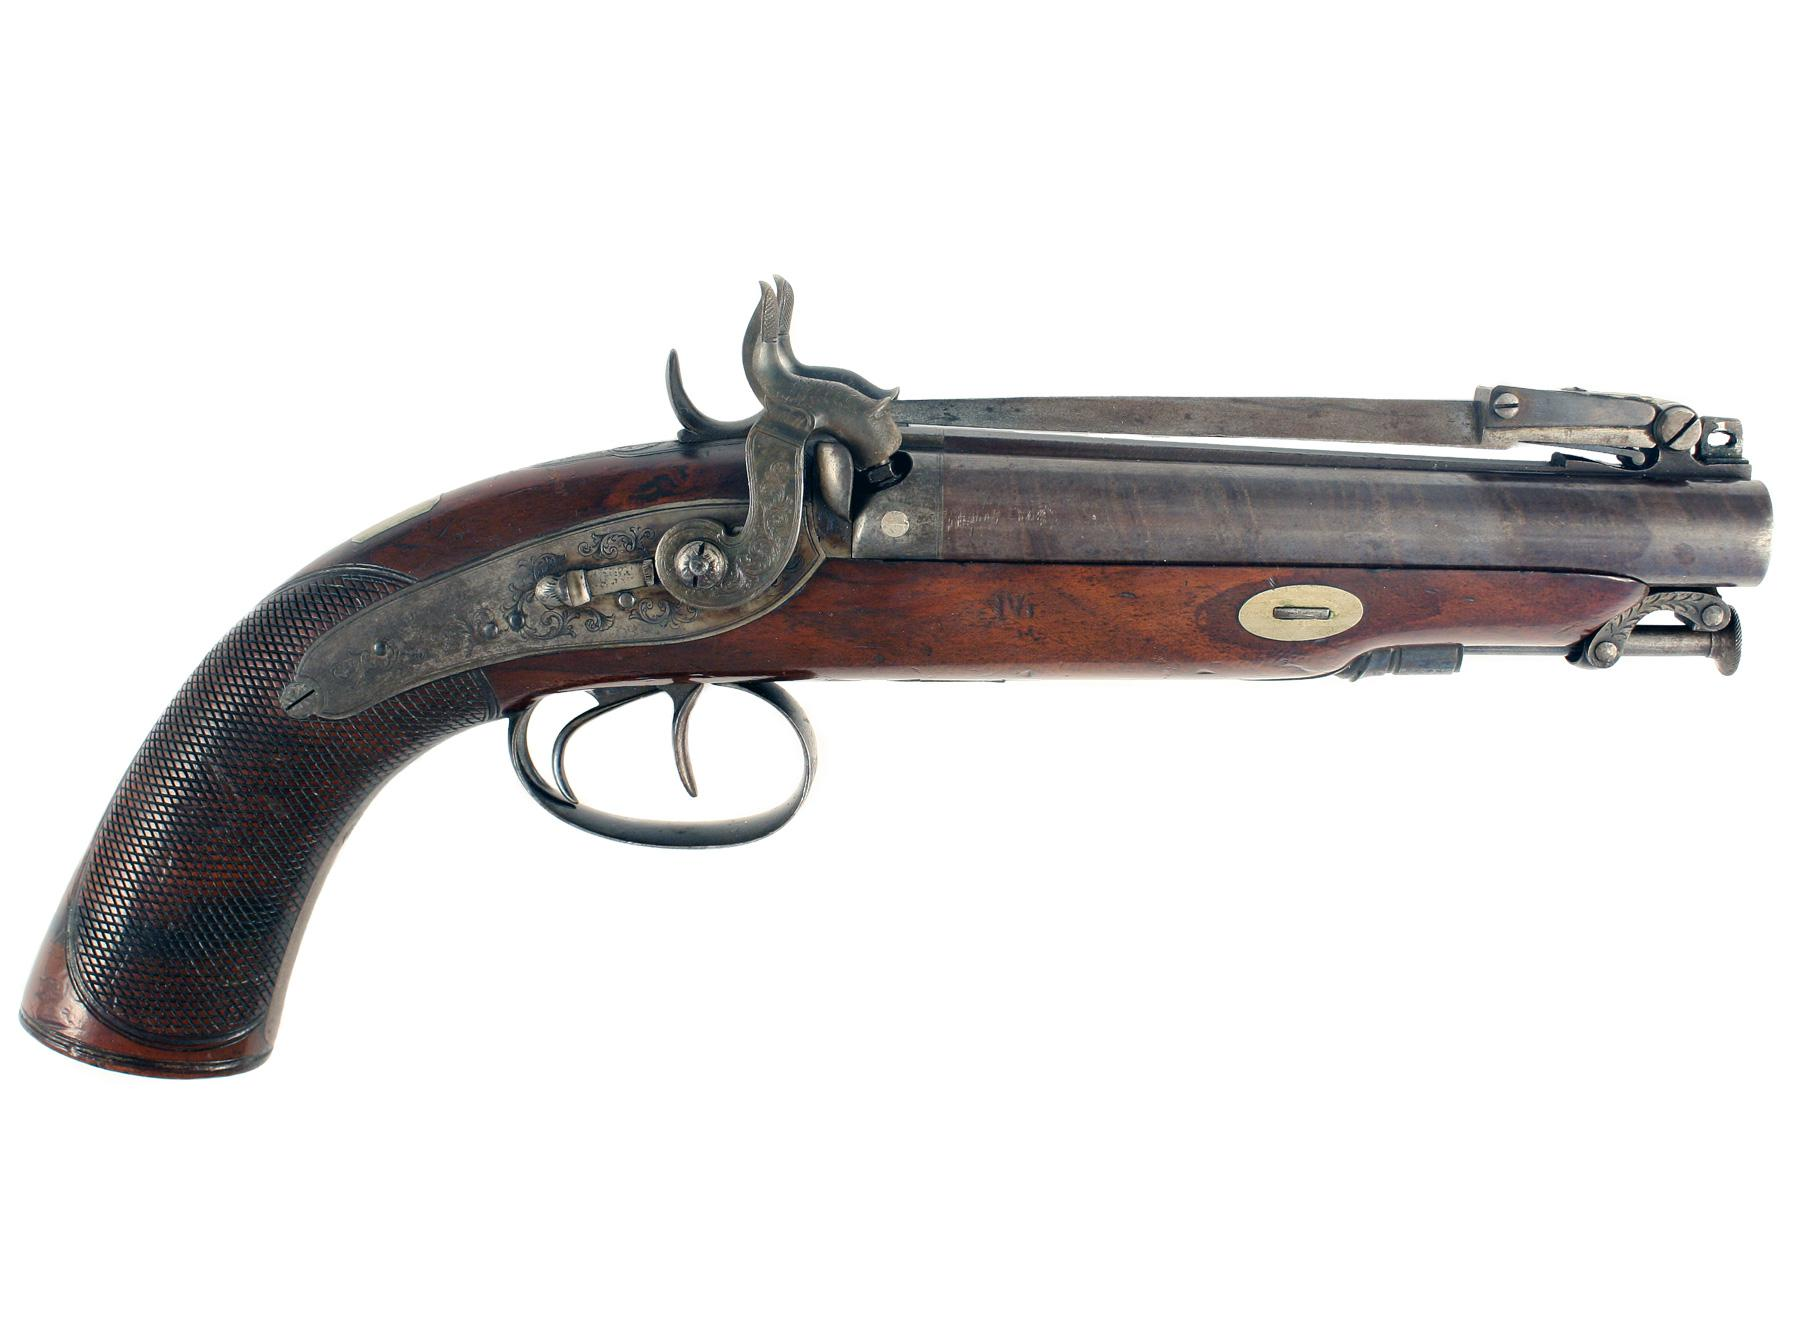 A Double Barrelled Travelling Pistol by Smith